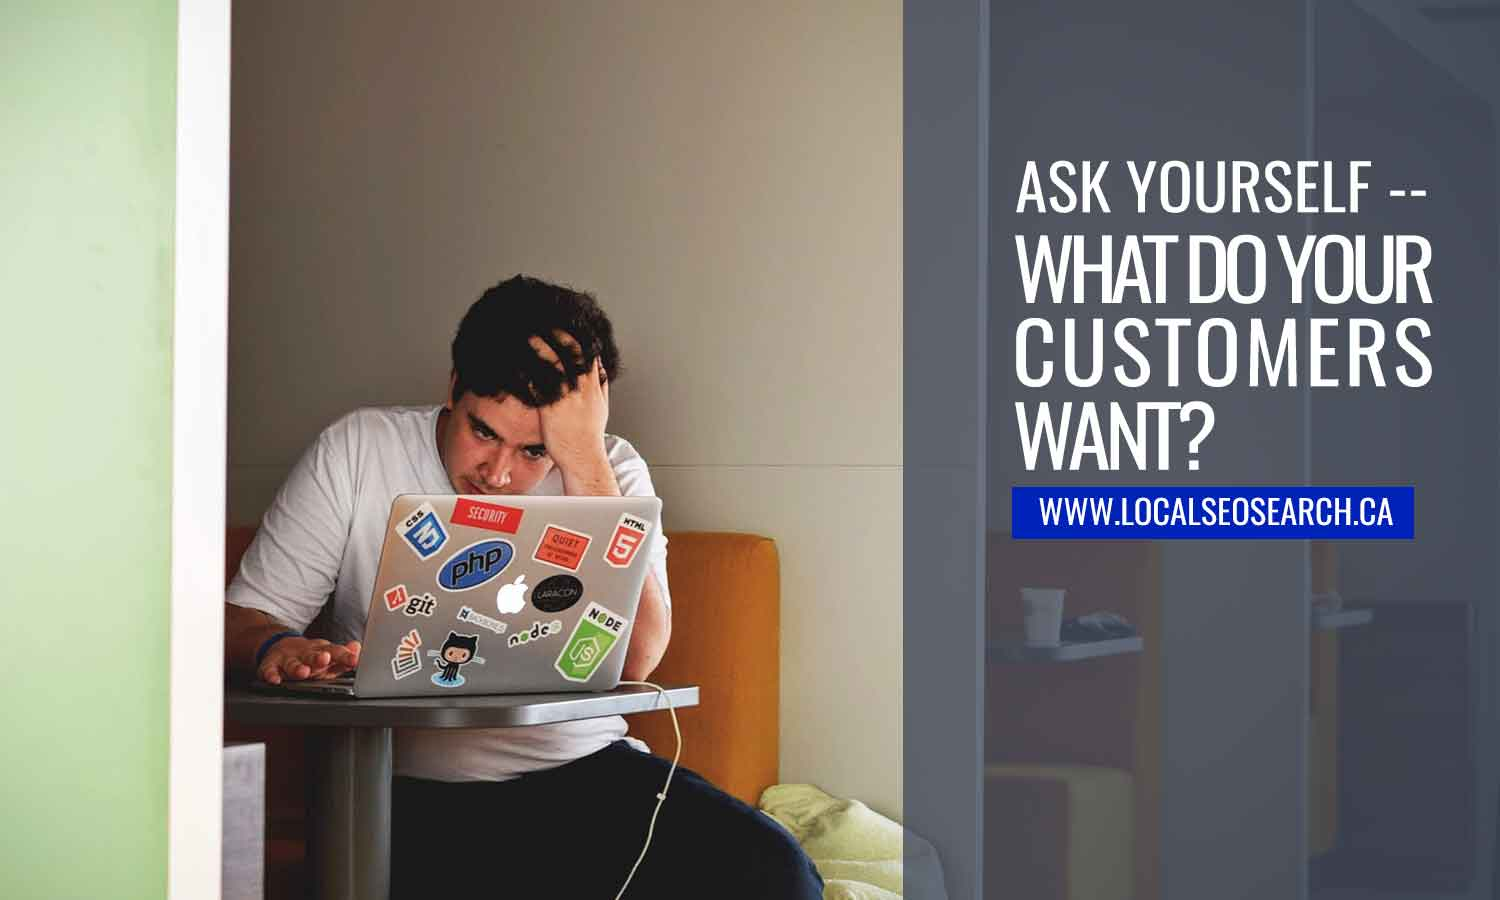 Ask yourself -- what do your customers want